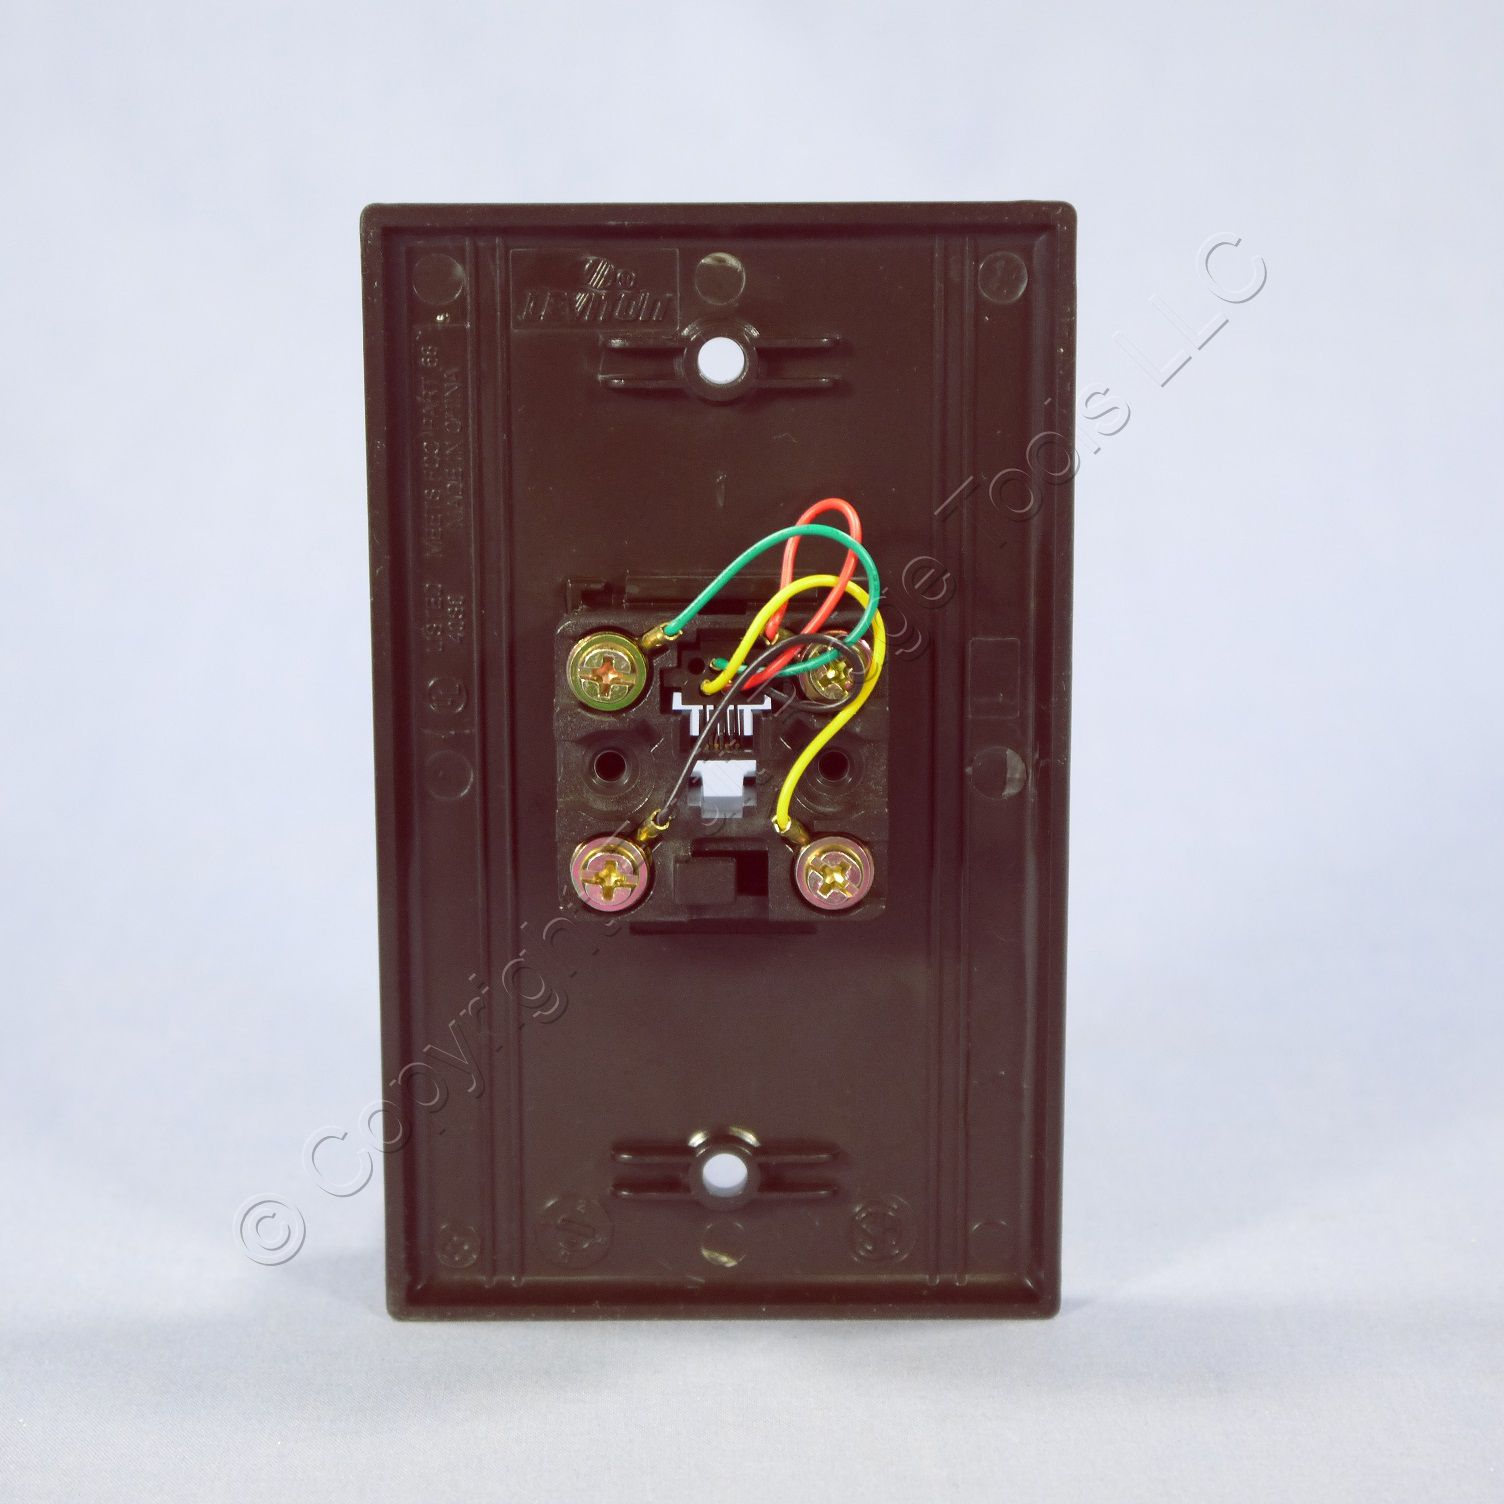 2 line phone wiring diagram images watch 2 line phone wiring diagram when all quot together leviton